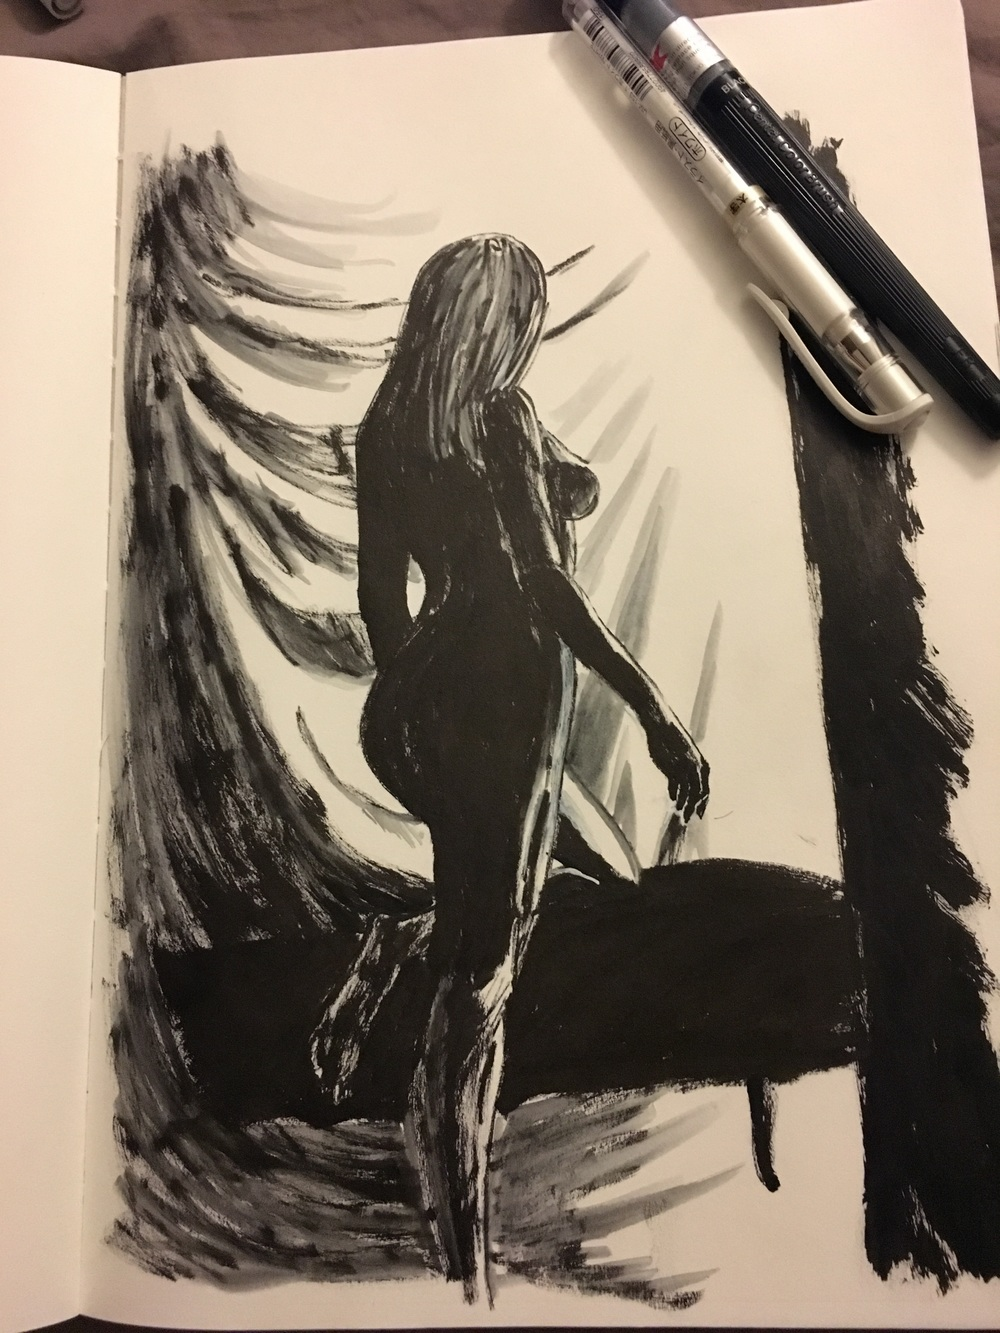 Pentel Brush and white gel pen figure study